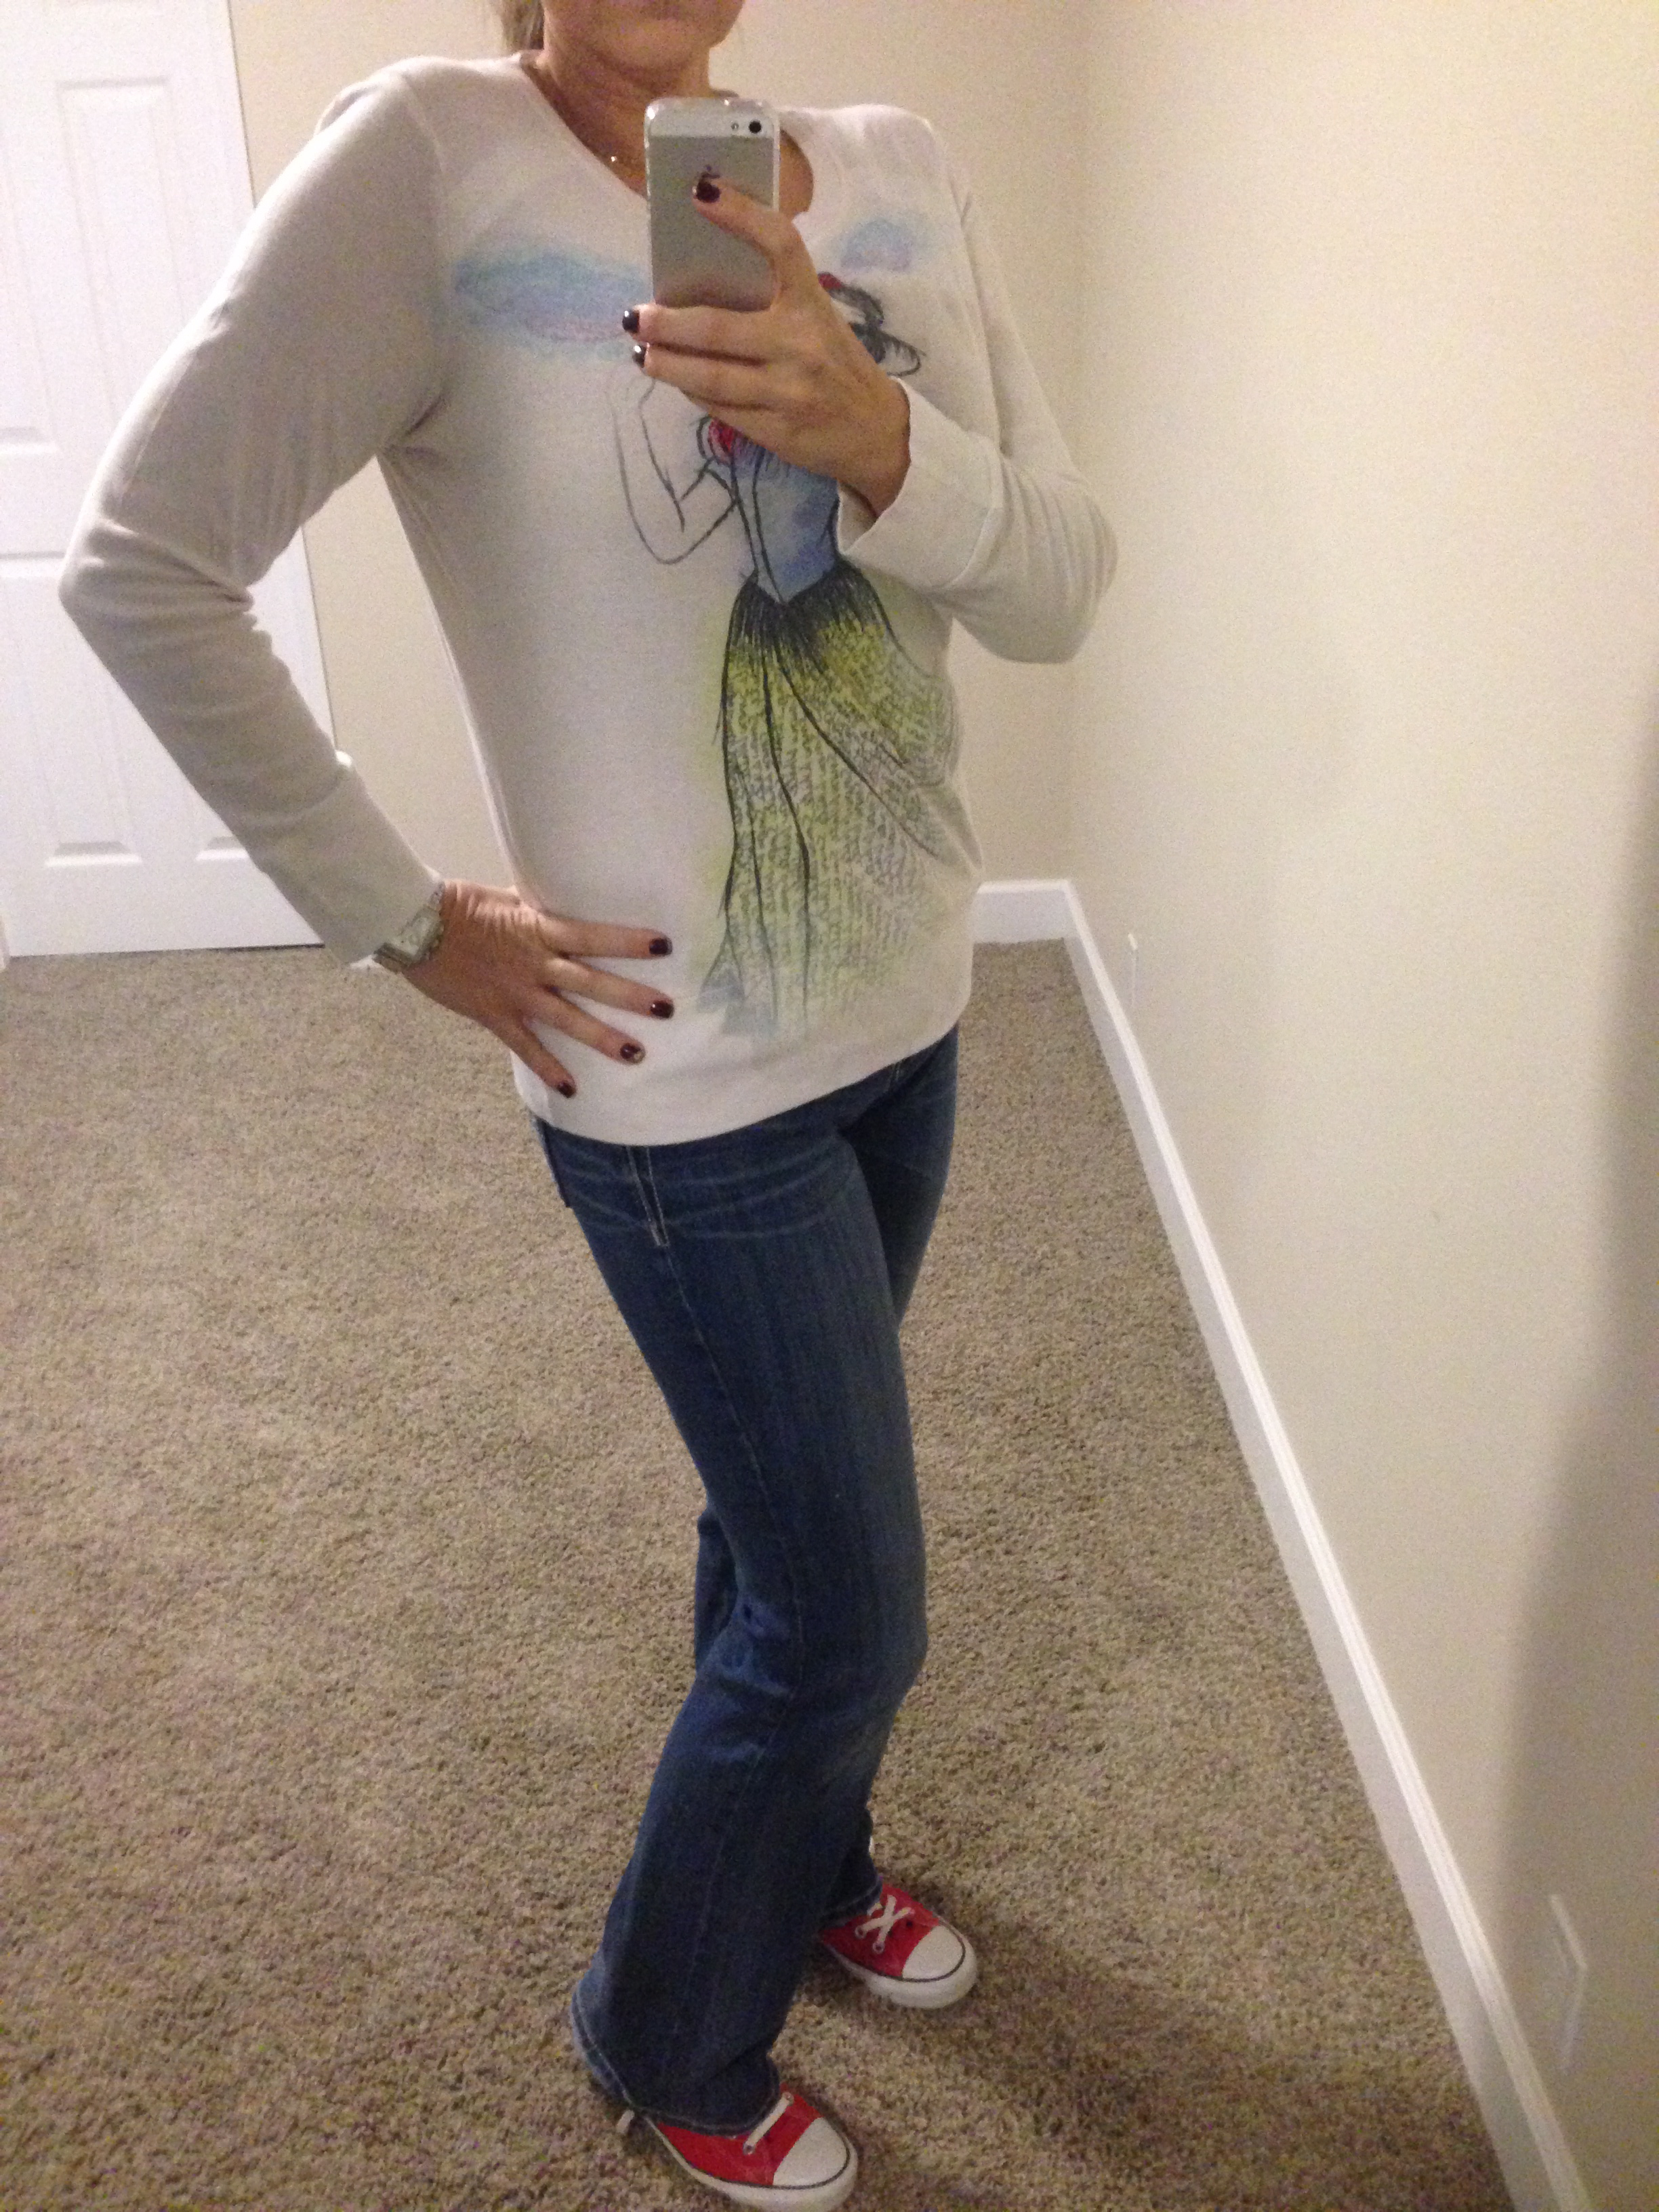 Shirt: Disneyland; Jeans: Miss Me Jeans; Shoes: Chuck Taylors by Converse; Watch: Michele